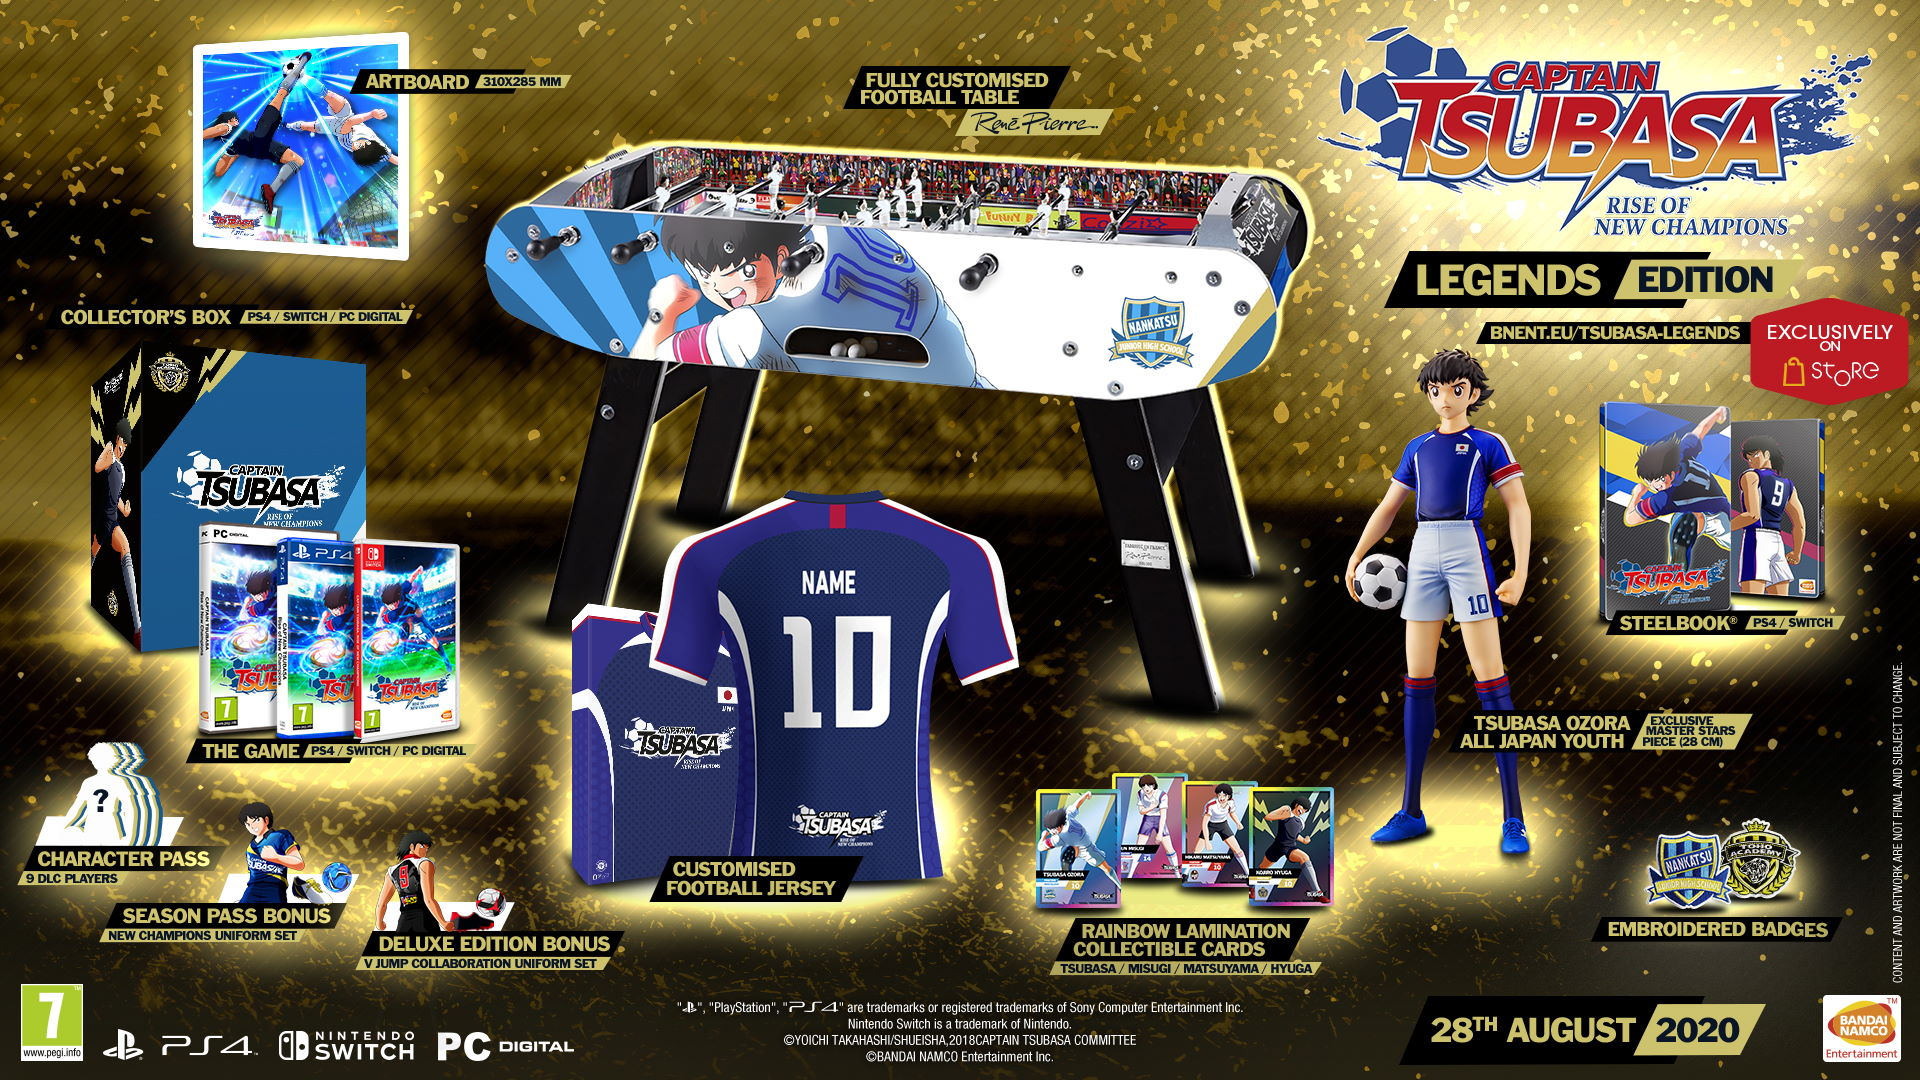 Captain Tsubasa Rise of New Champions Legends Edition